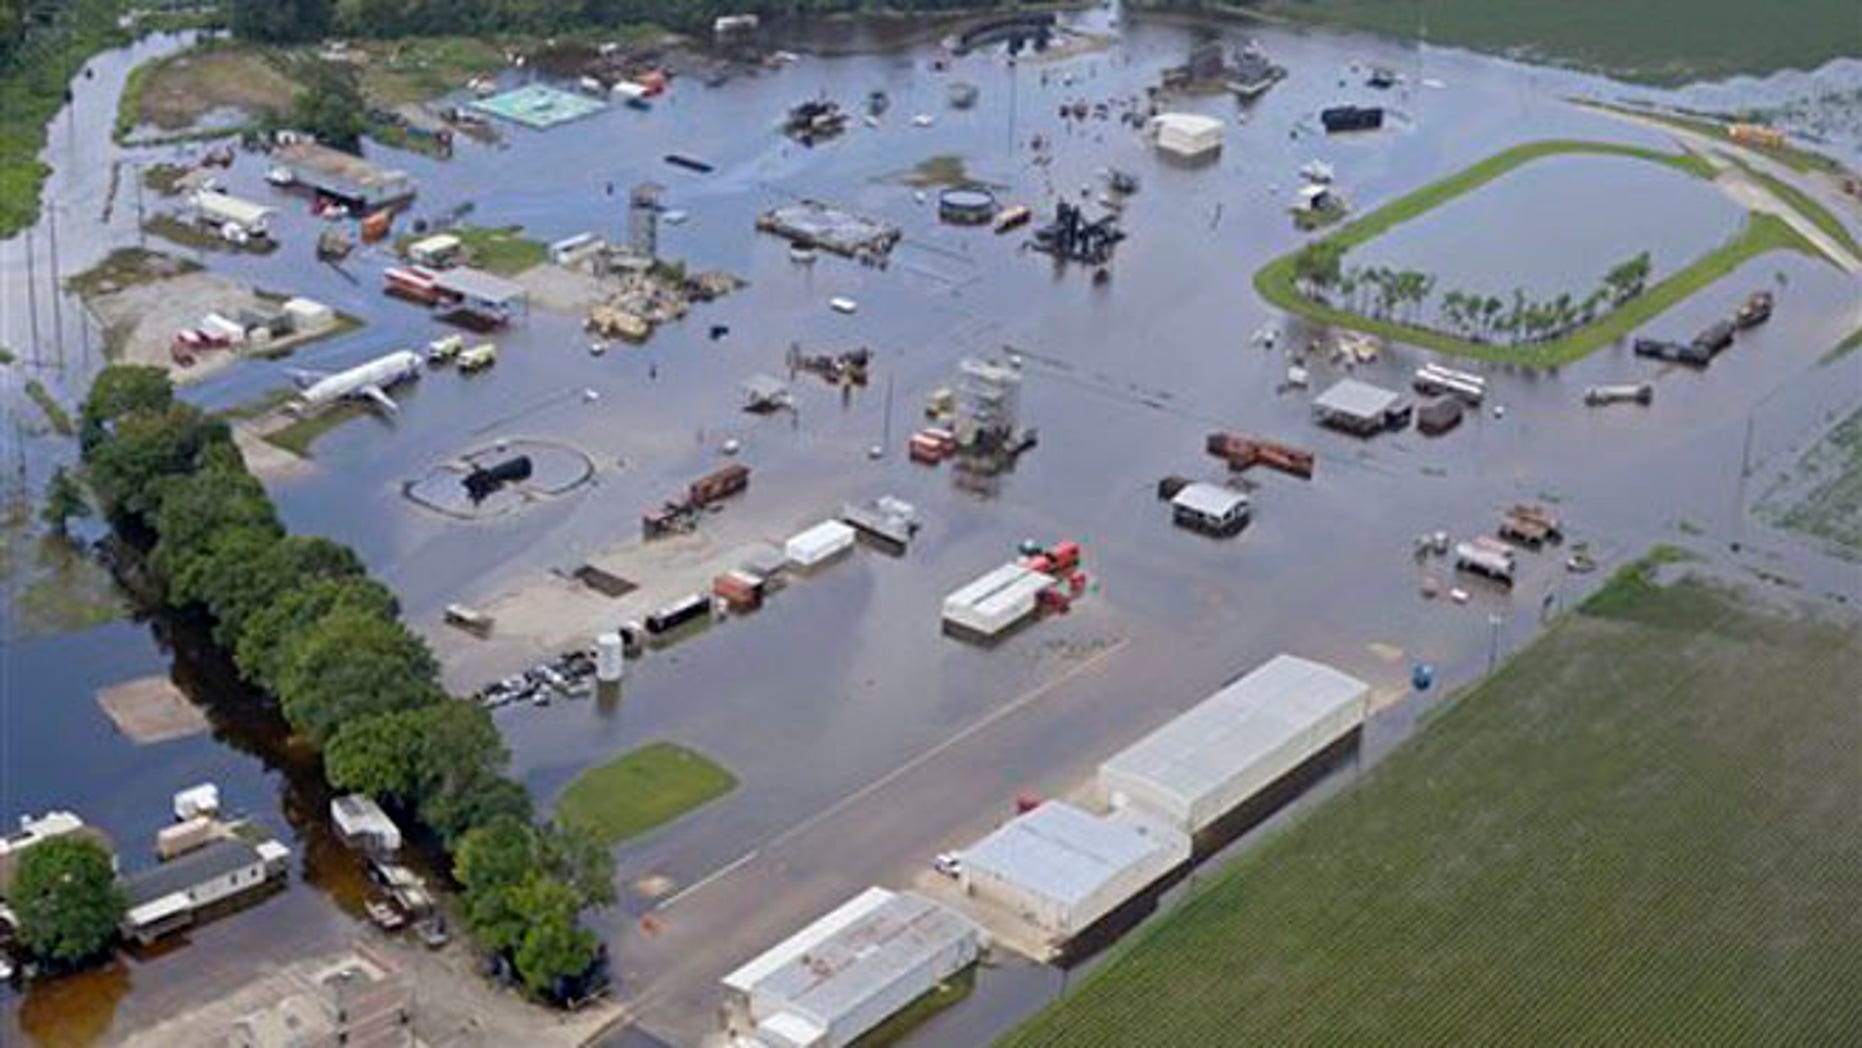 Floodwater covers the site of the LSU Fire and Emergency Training Institute after heavy rains in Baton Rouge on August 16.